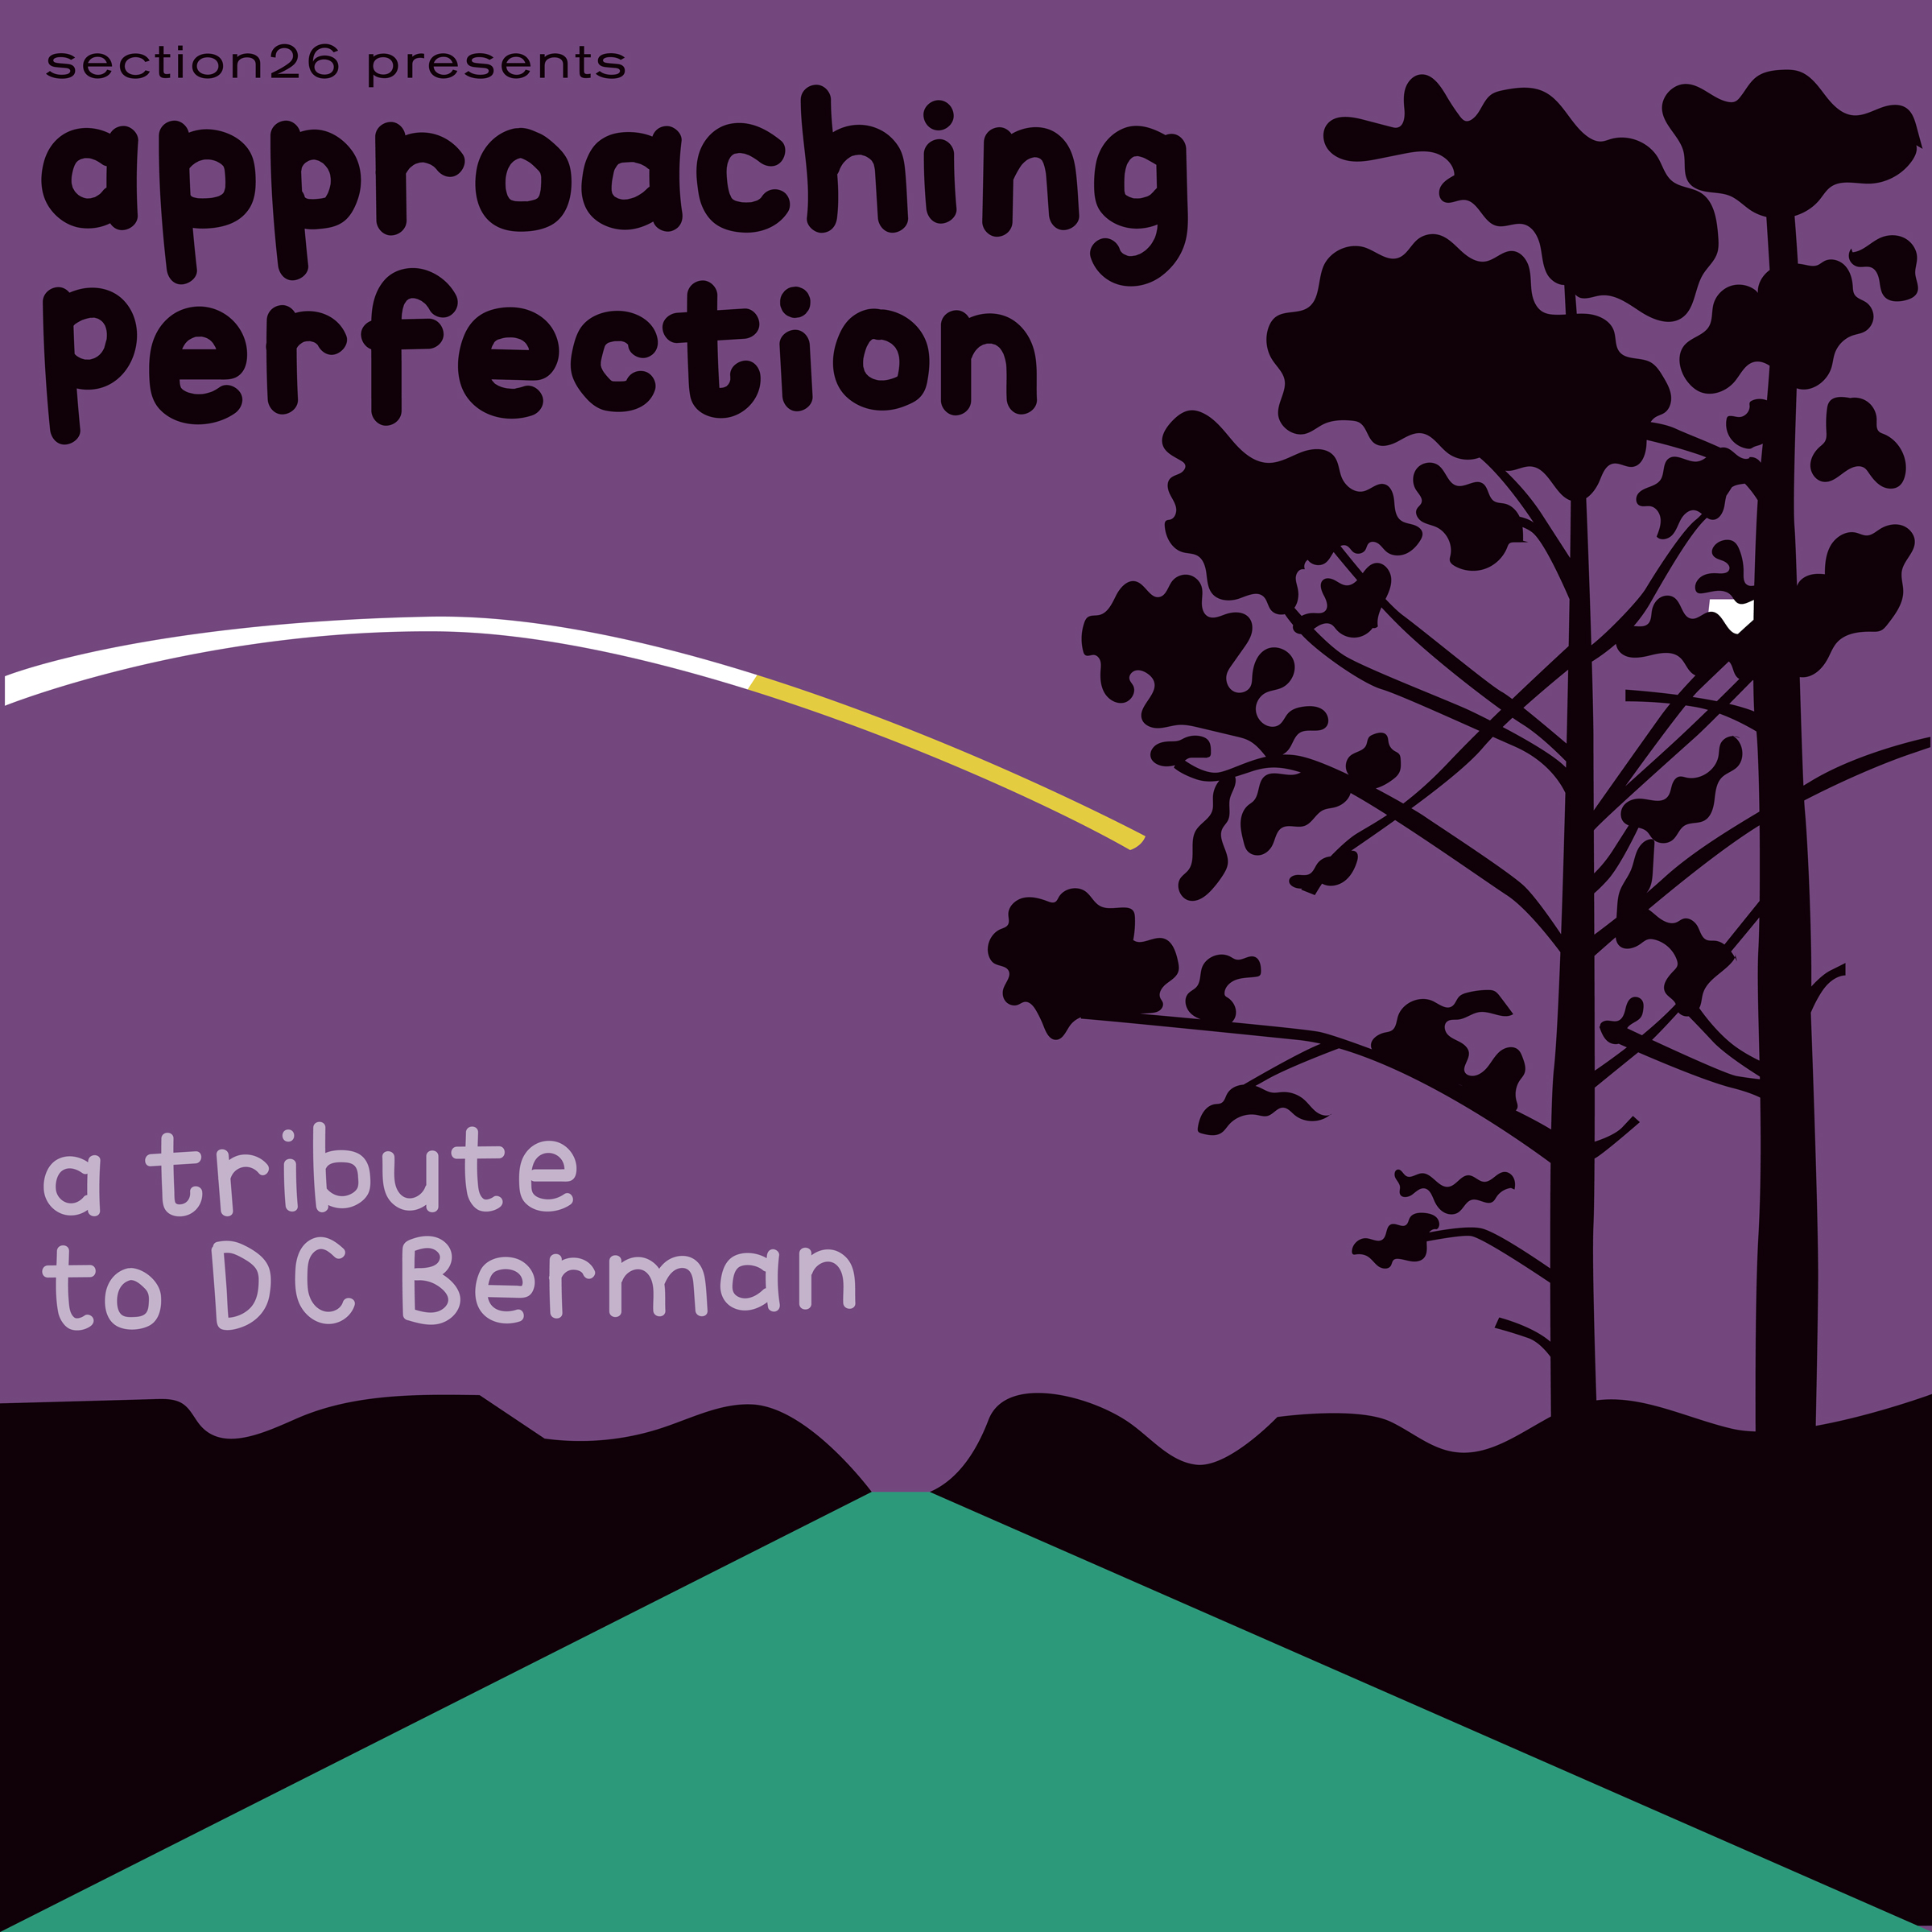 Approcahing Perfection a tribute to DC Berman